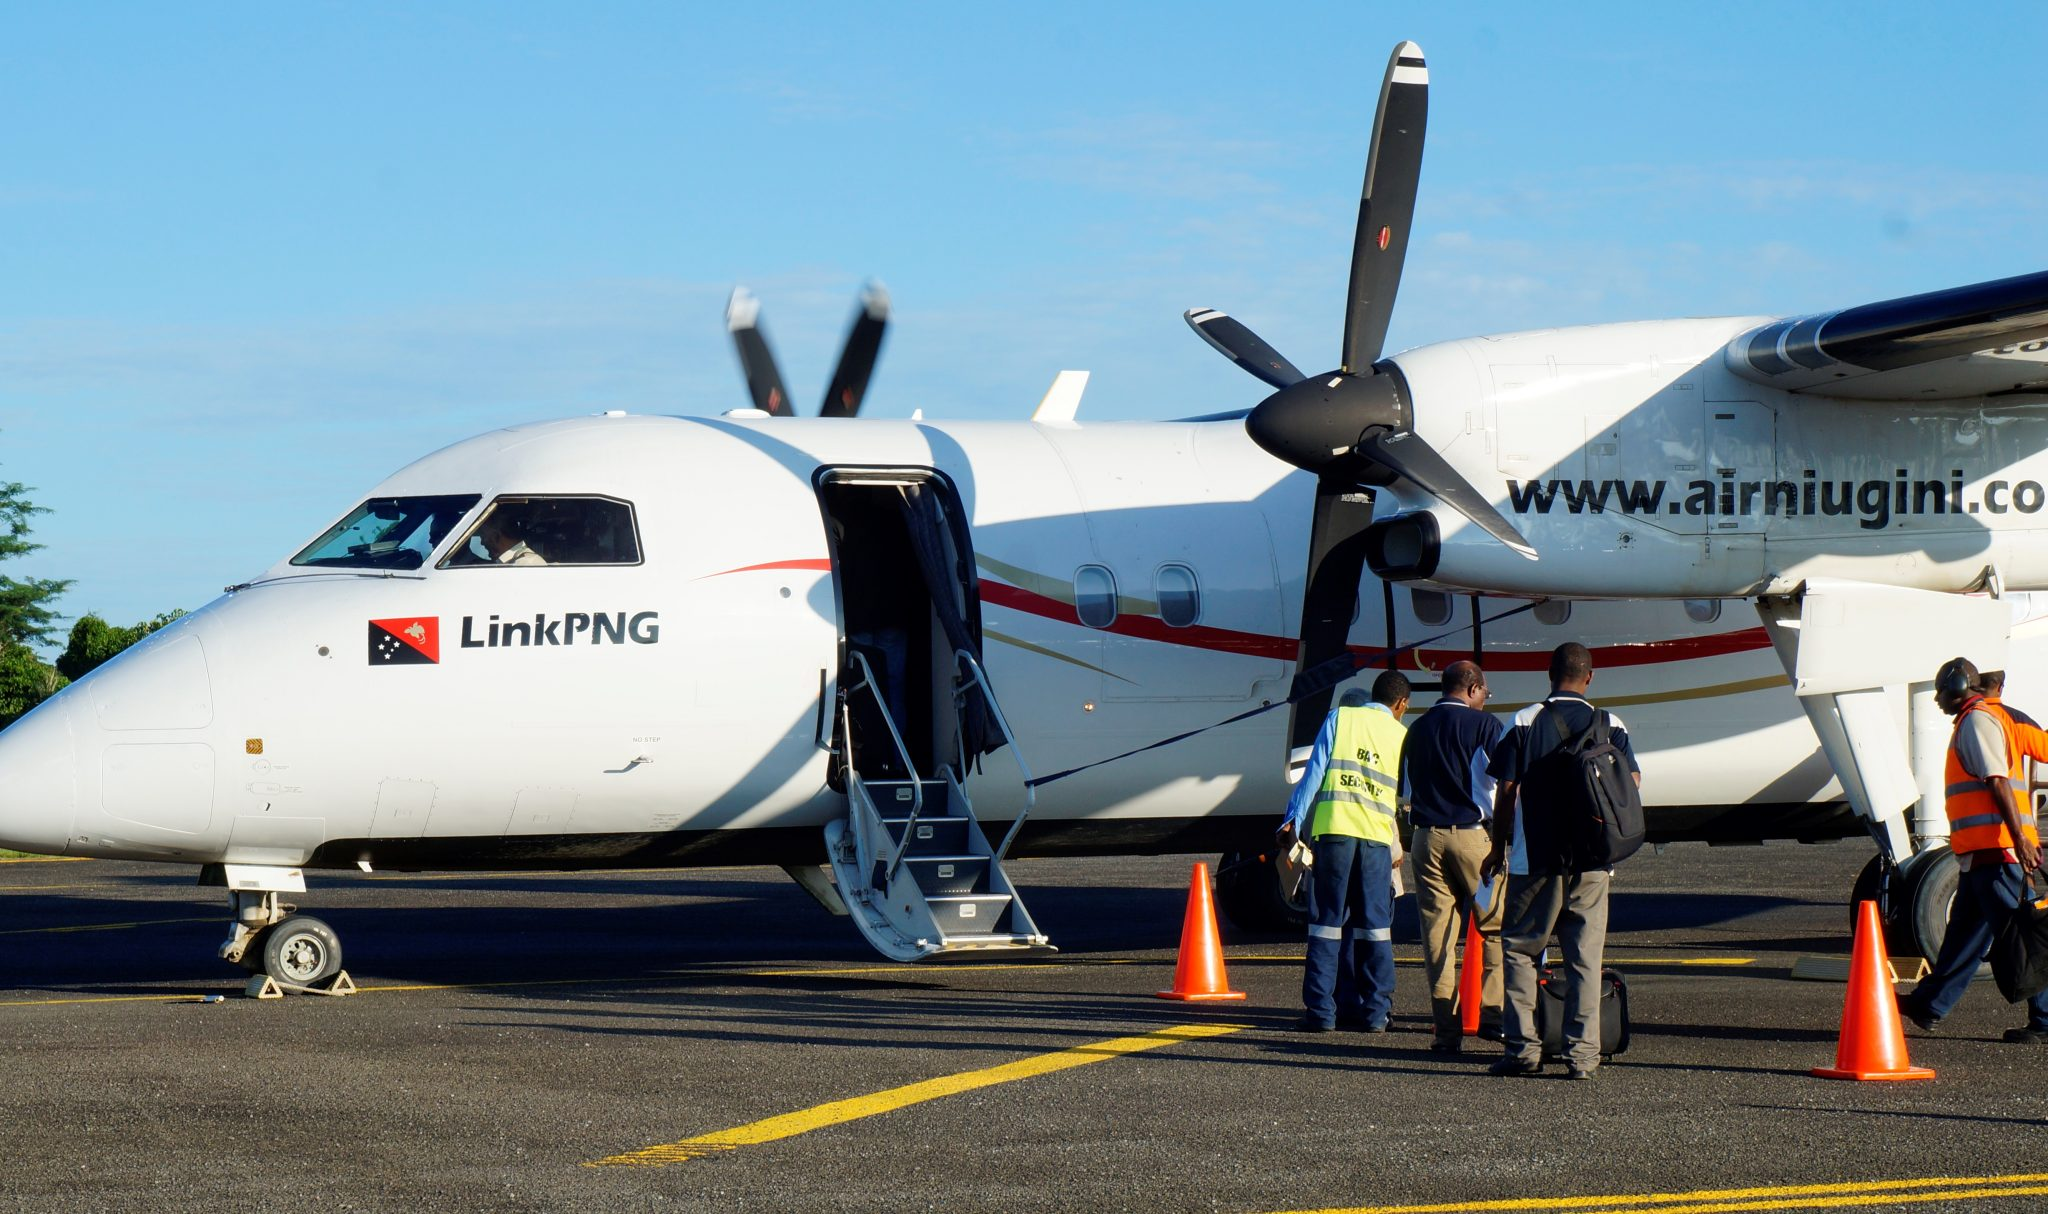 Link PNG amends Goroka schedule for May due to airport being closed on Saturday and Sunday morning